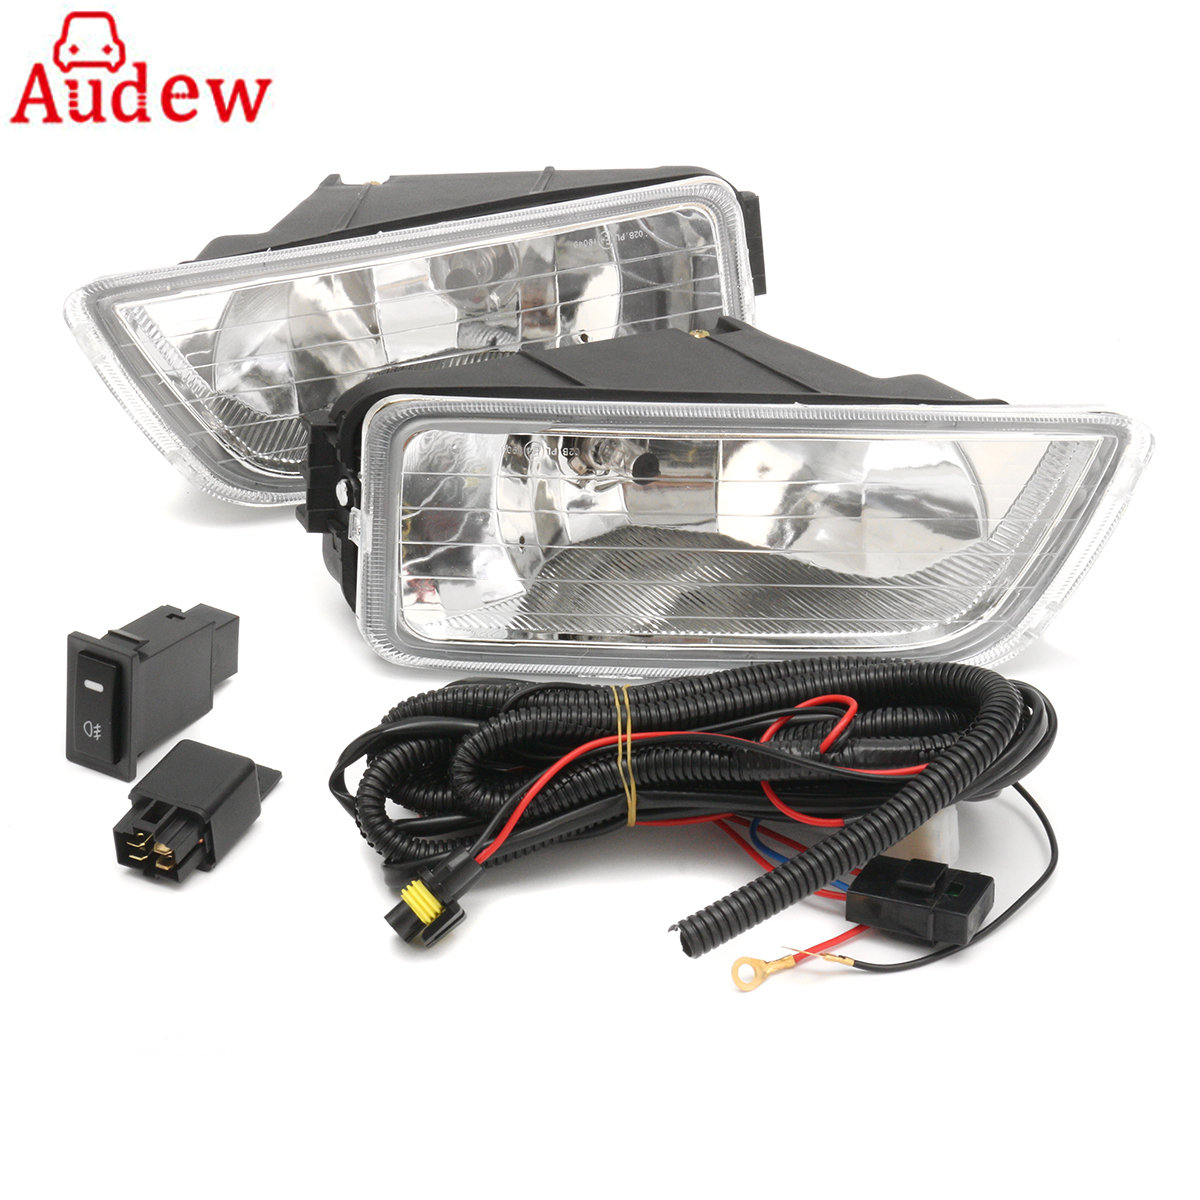 2Pcs H11 55W Car Front Side Fog Lamp Light Assembly With Wiring Harness and accessories For Honda/Accord 2003-2007 130 bb 8899 r